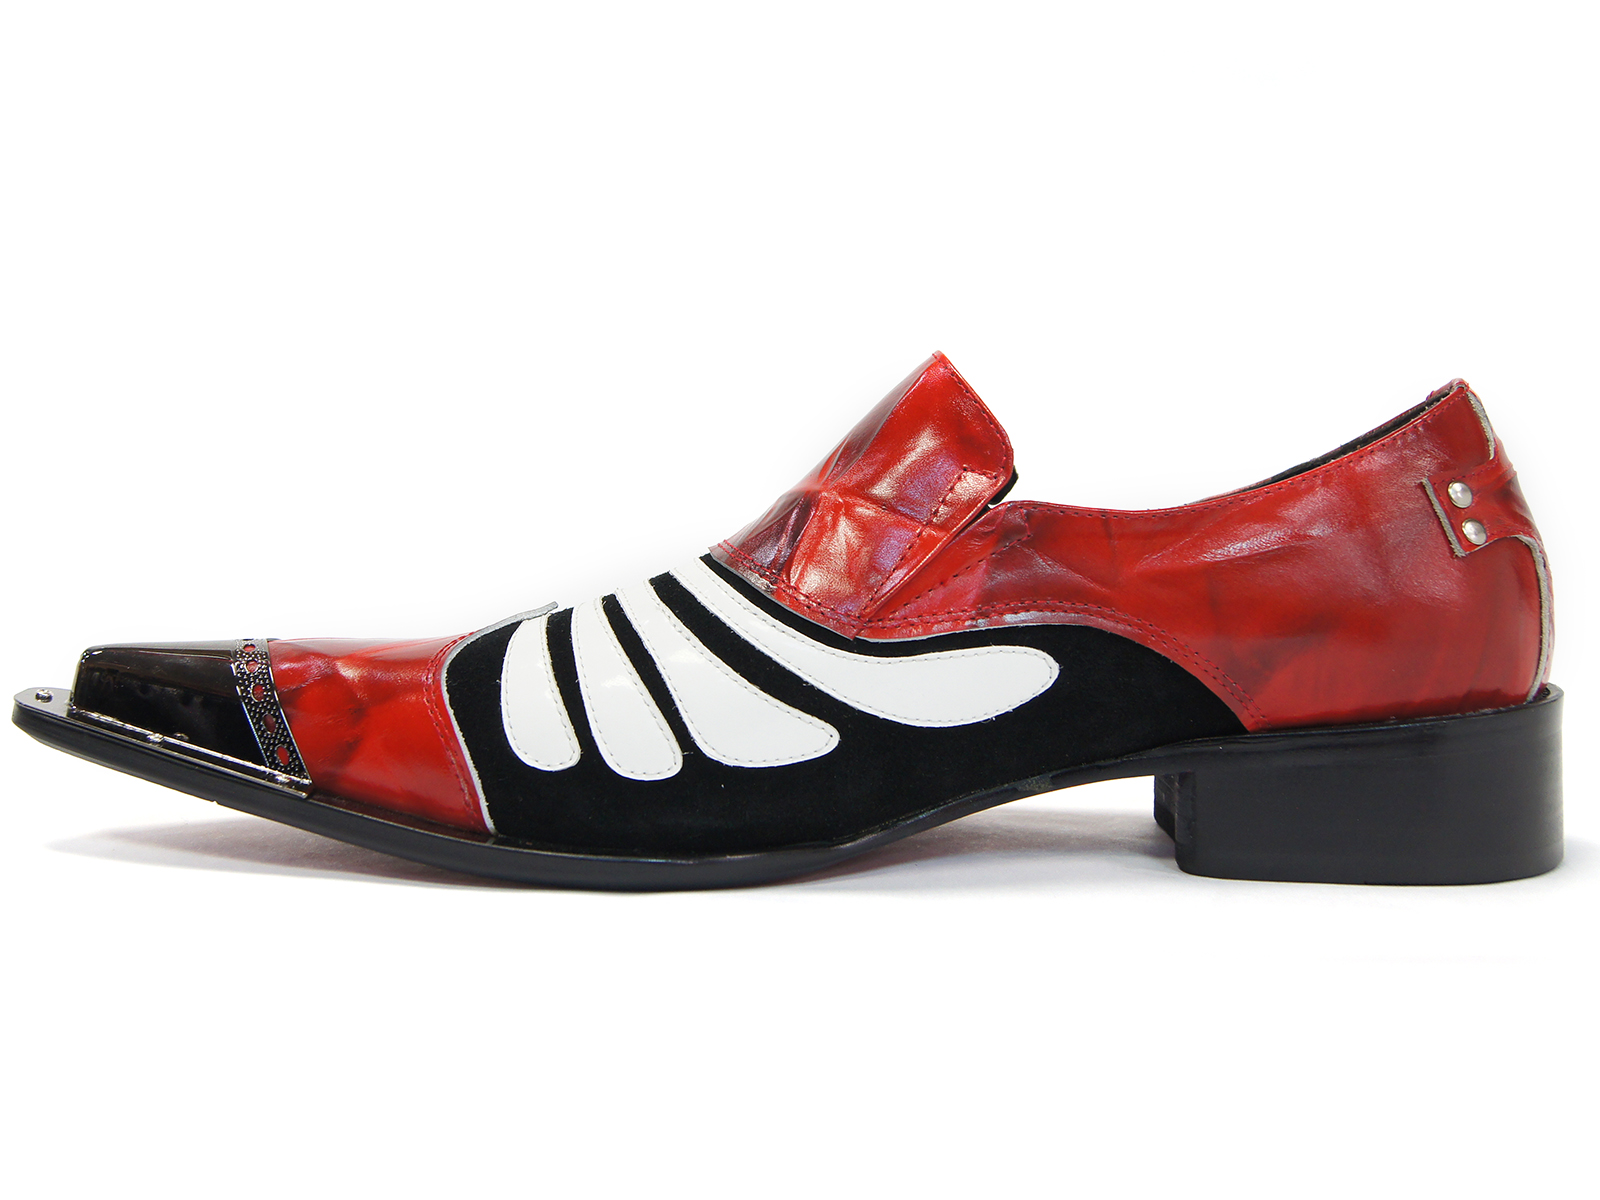 cdef1c832294 Zota Mens Black Red White Patent Leather Metal Tip Slip On Trendy Loafer  Shoe